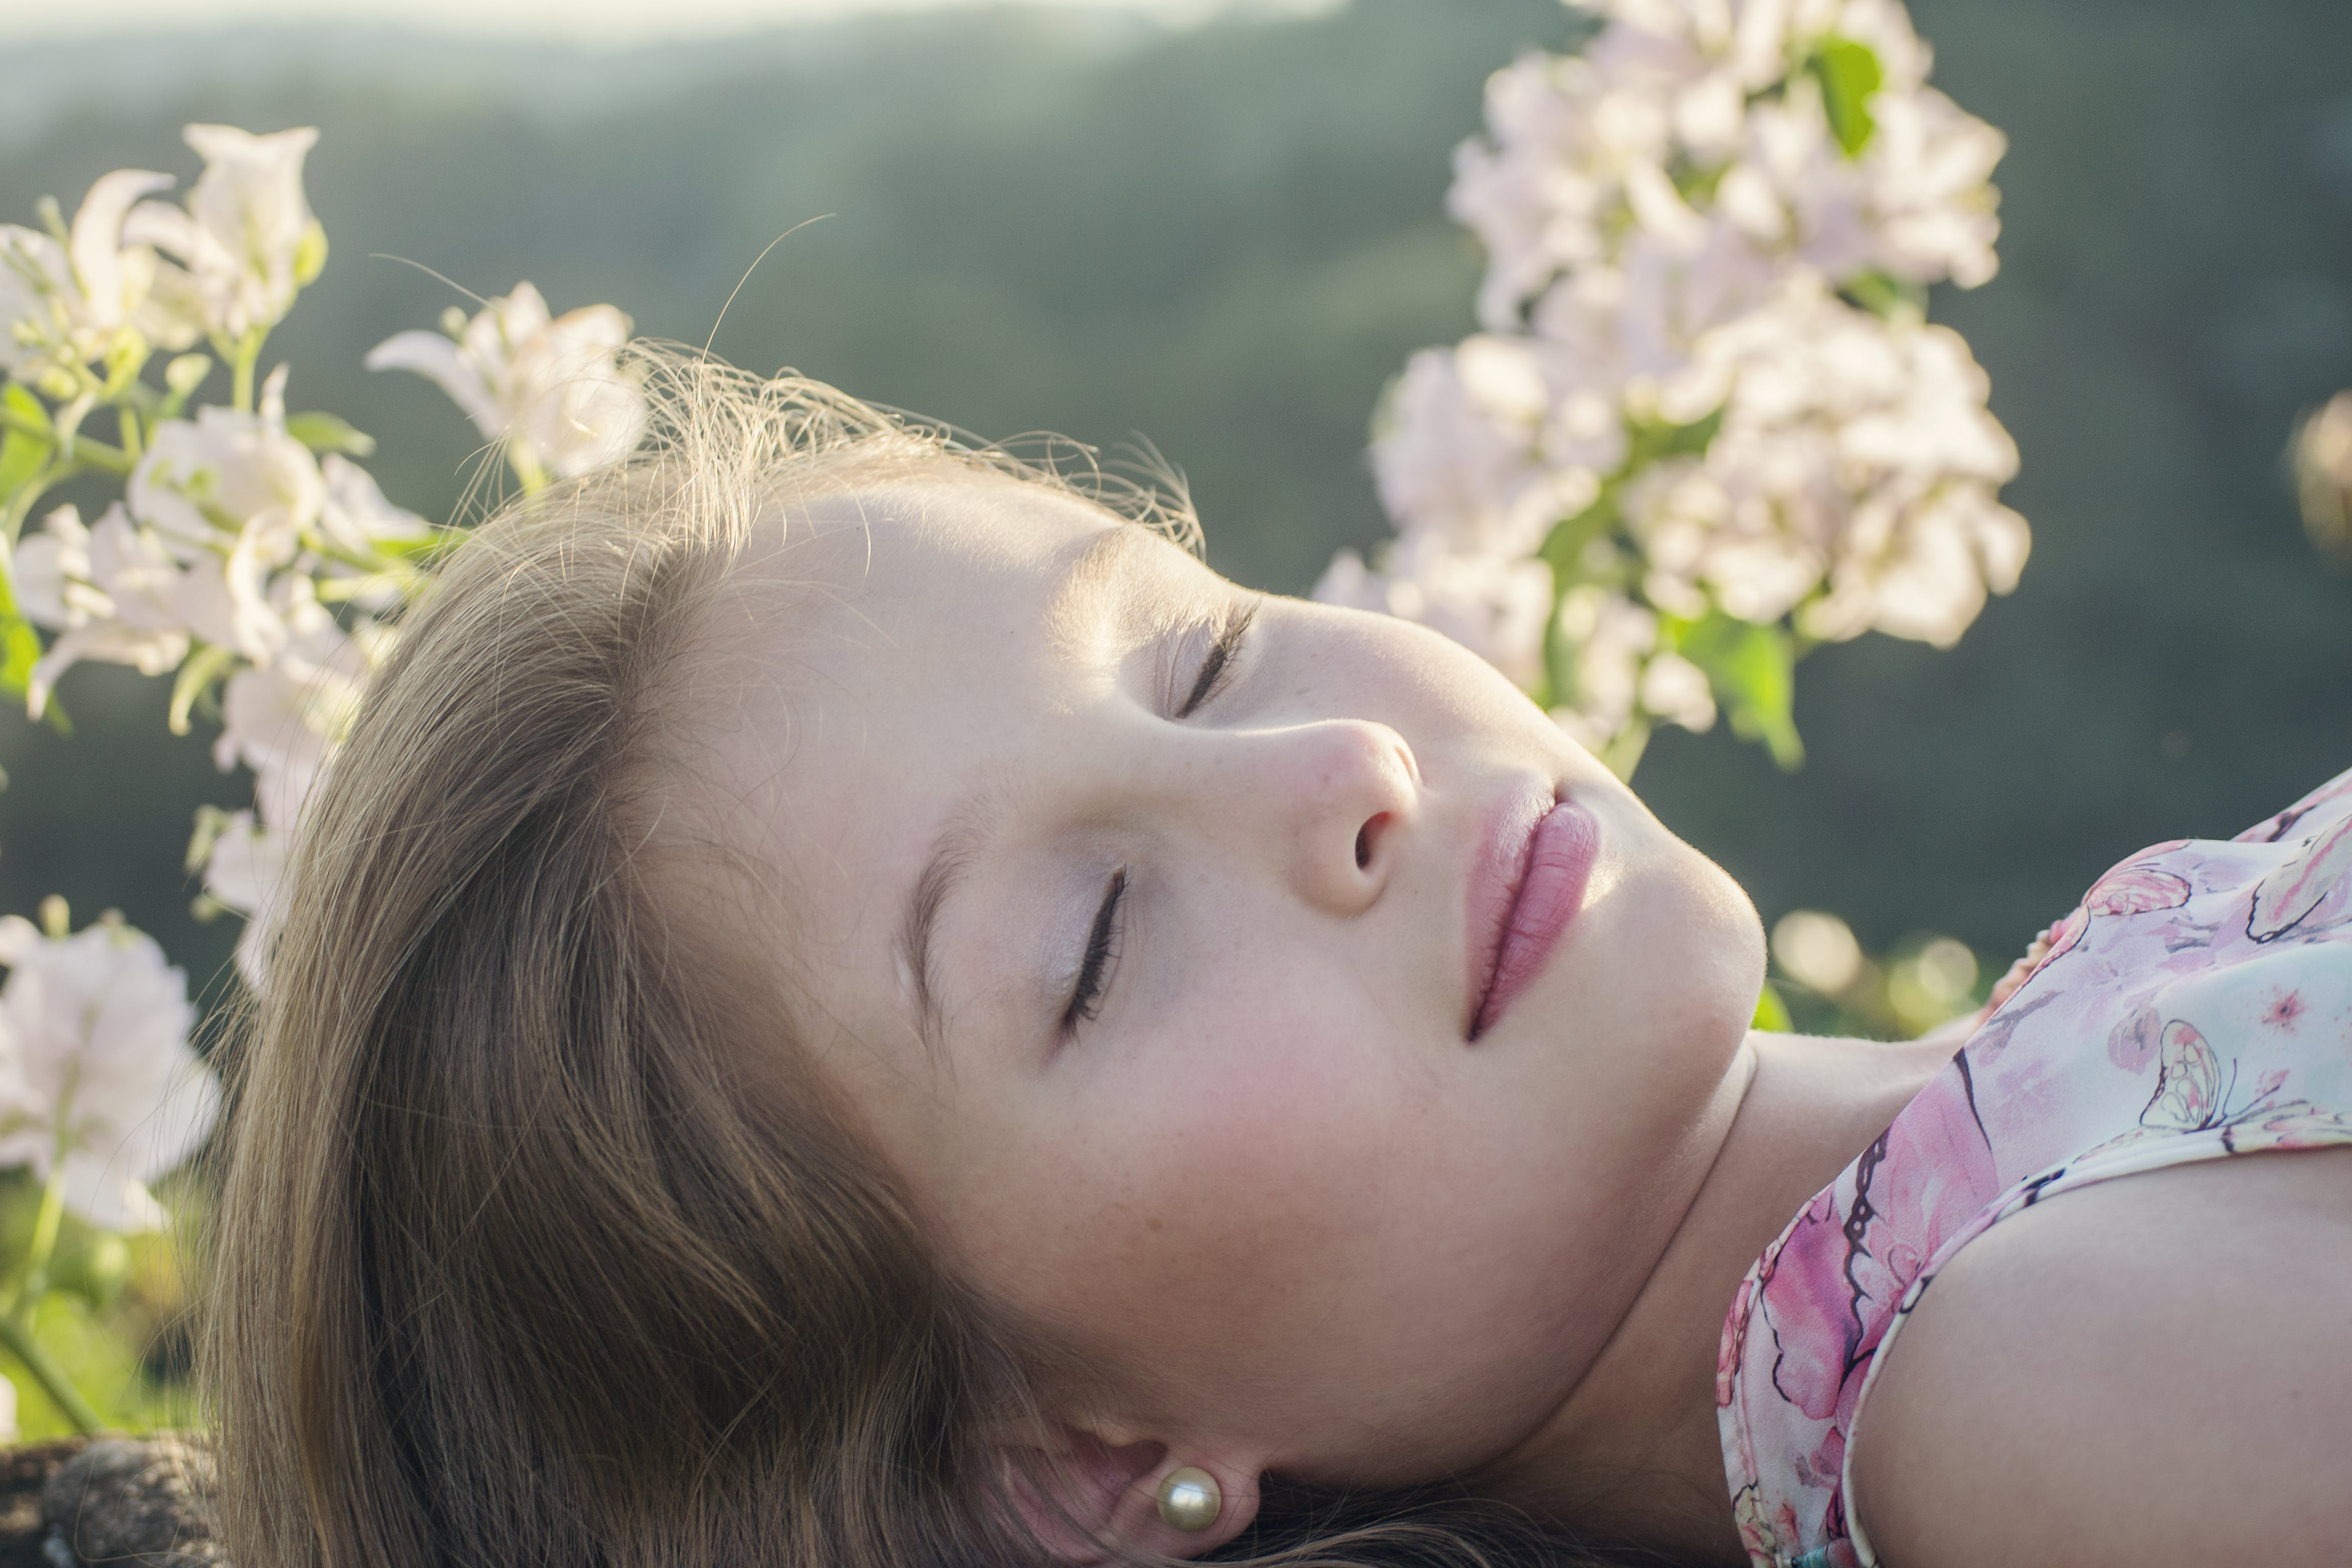 Close-Up Photo of Girl Near Flowers